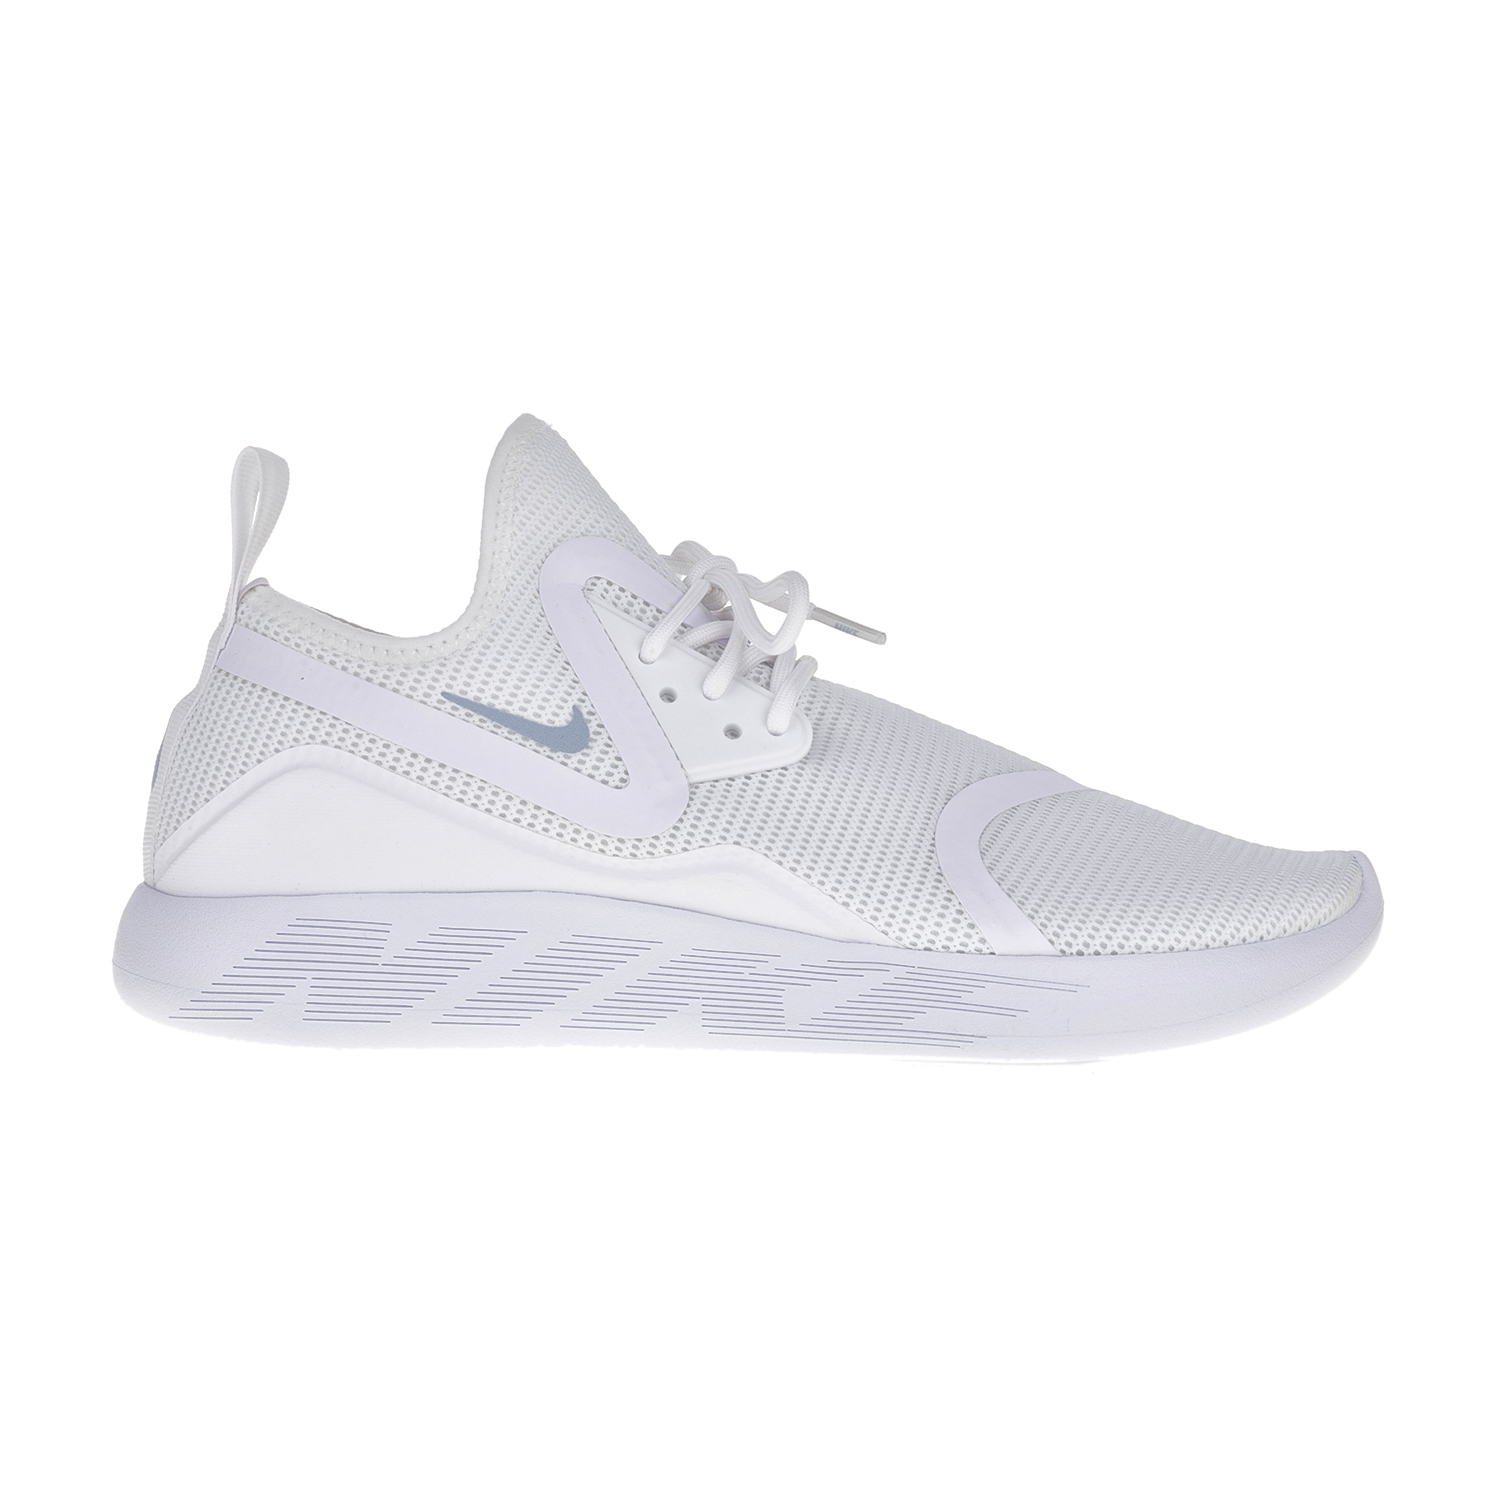 NIKE – Ανδρικά αθλητικά παπούτσια Nike LUNARCHARGE BR λευκά